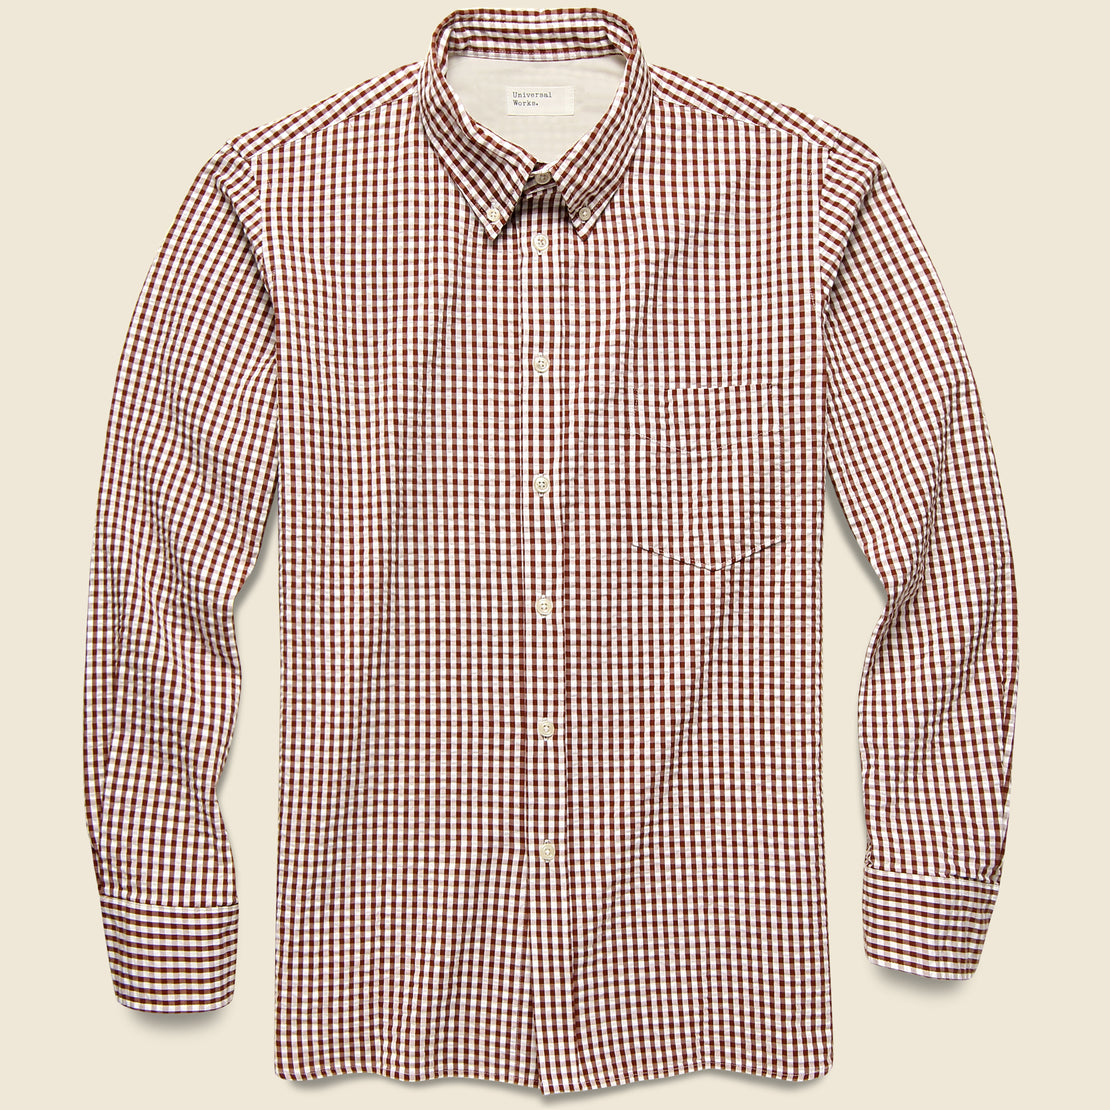 Universal Works Everyday Shirt - Brown Gingham Seersucker